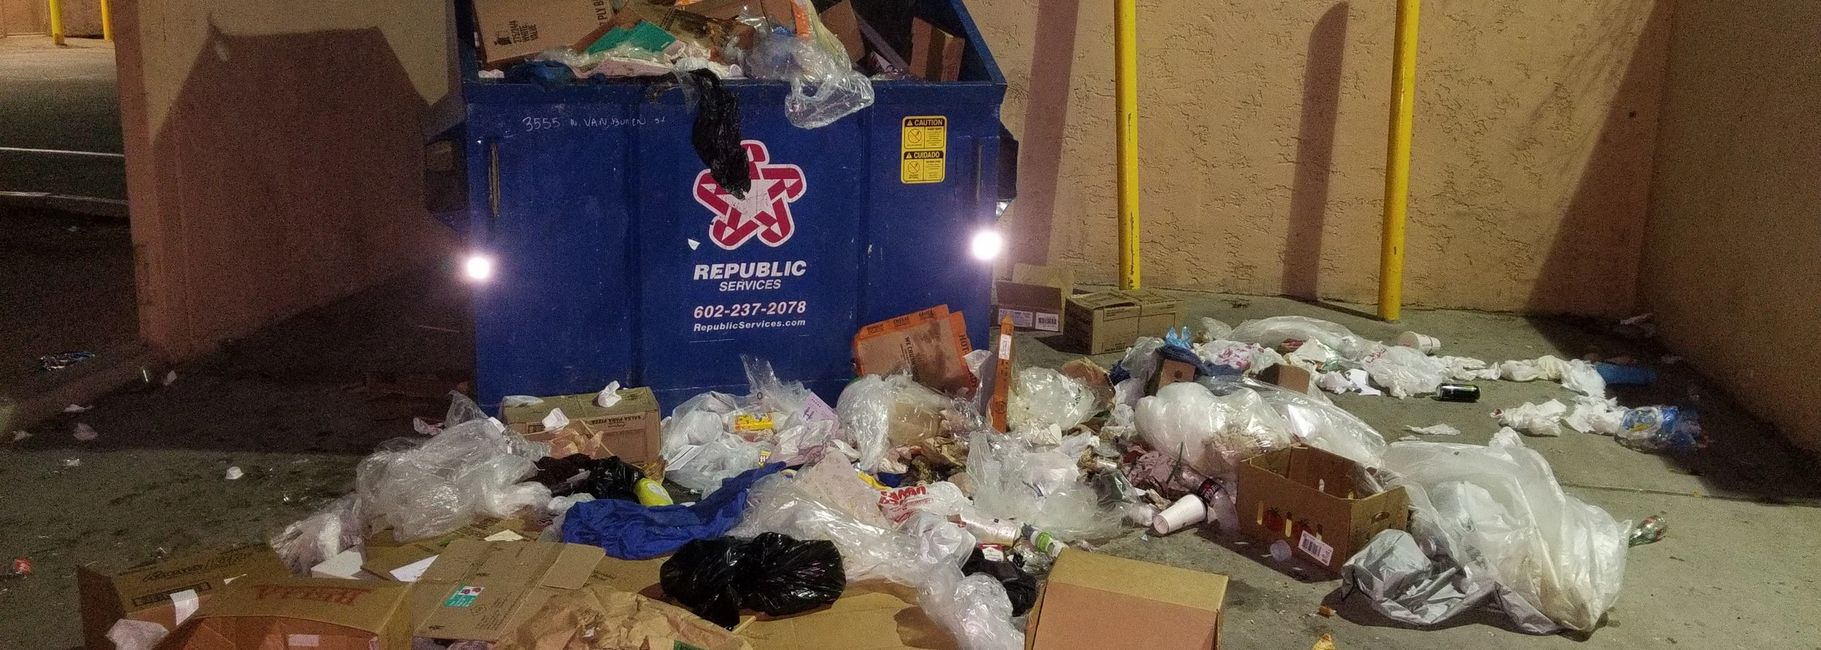 TRASH REMOVAL PHOENIX TRASH PICKUP JUNK REMOVAL TRASH REMOVAL